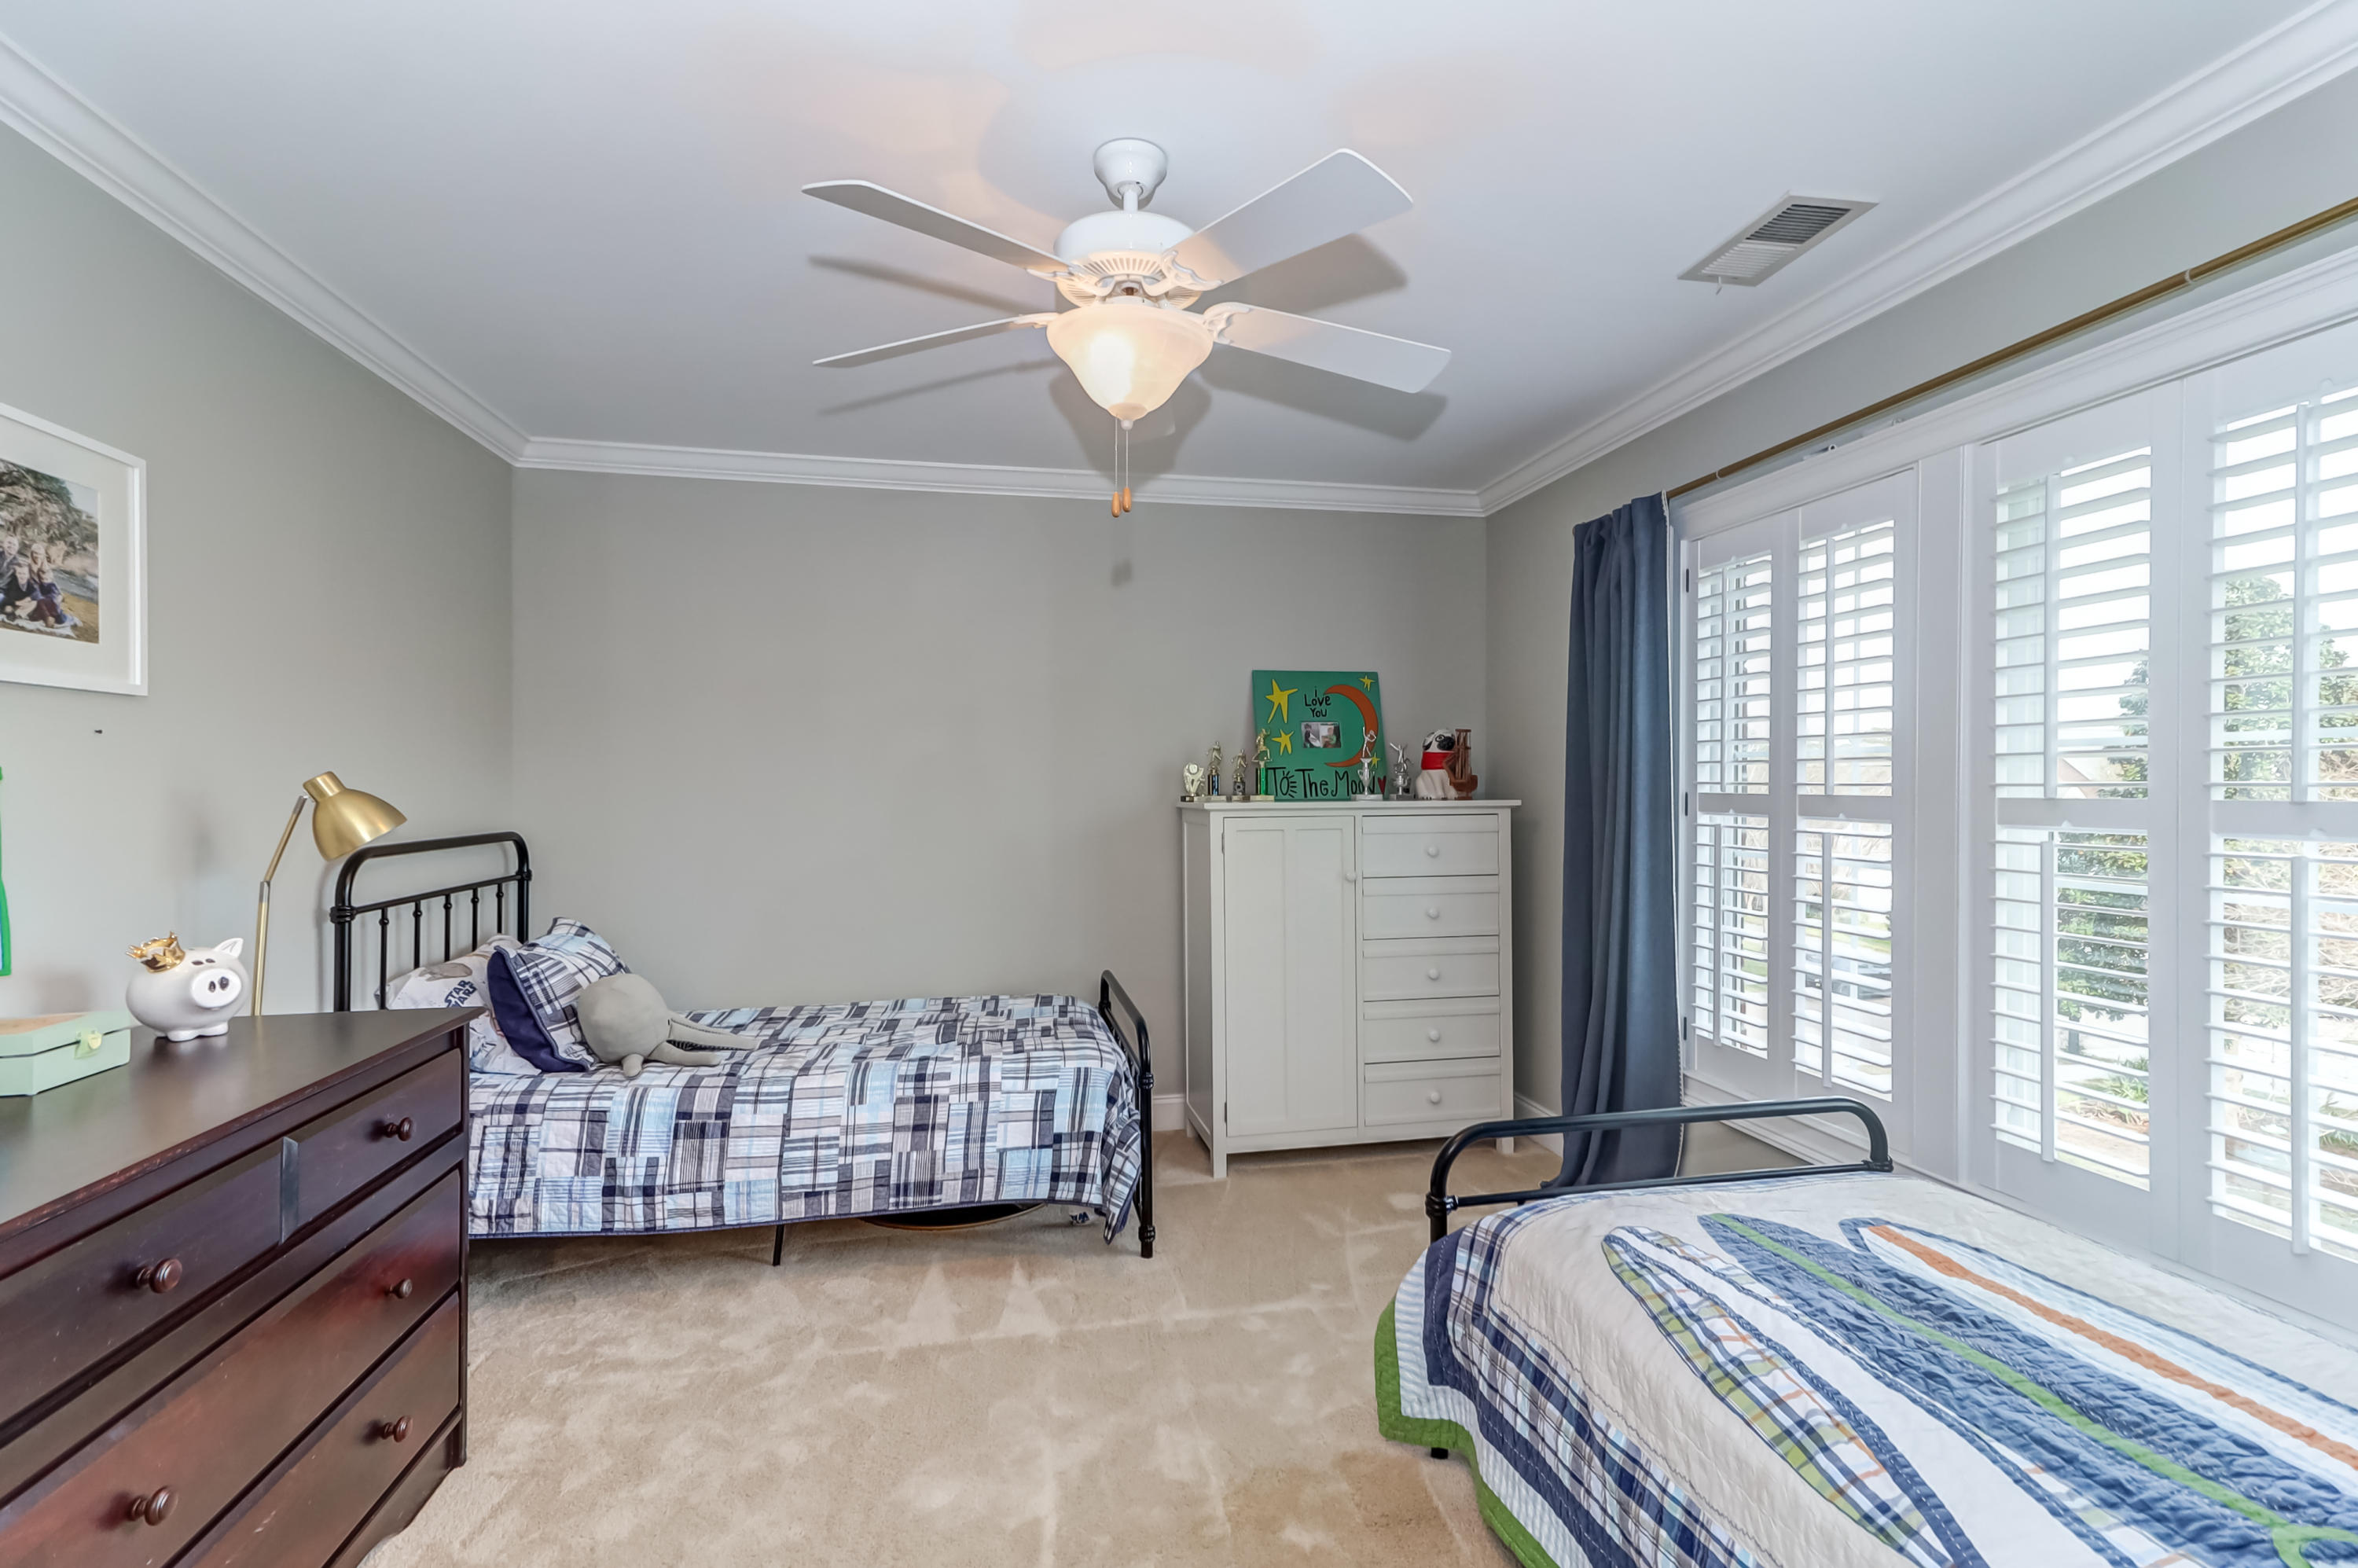 Woodward Pointe Homes For Sale - 657 White Chapel, Charleston, SC - 4